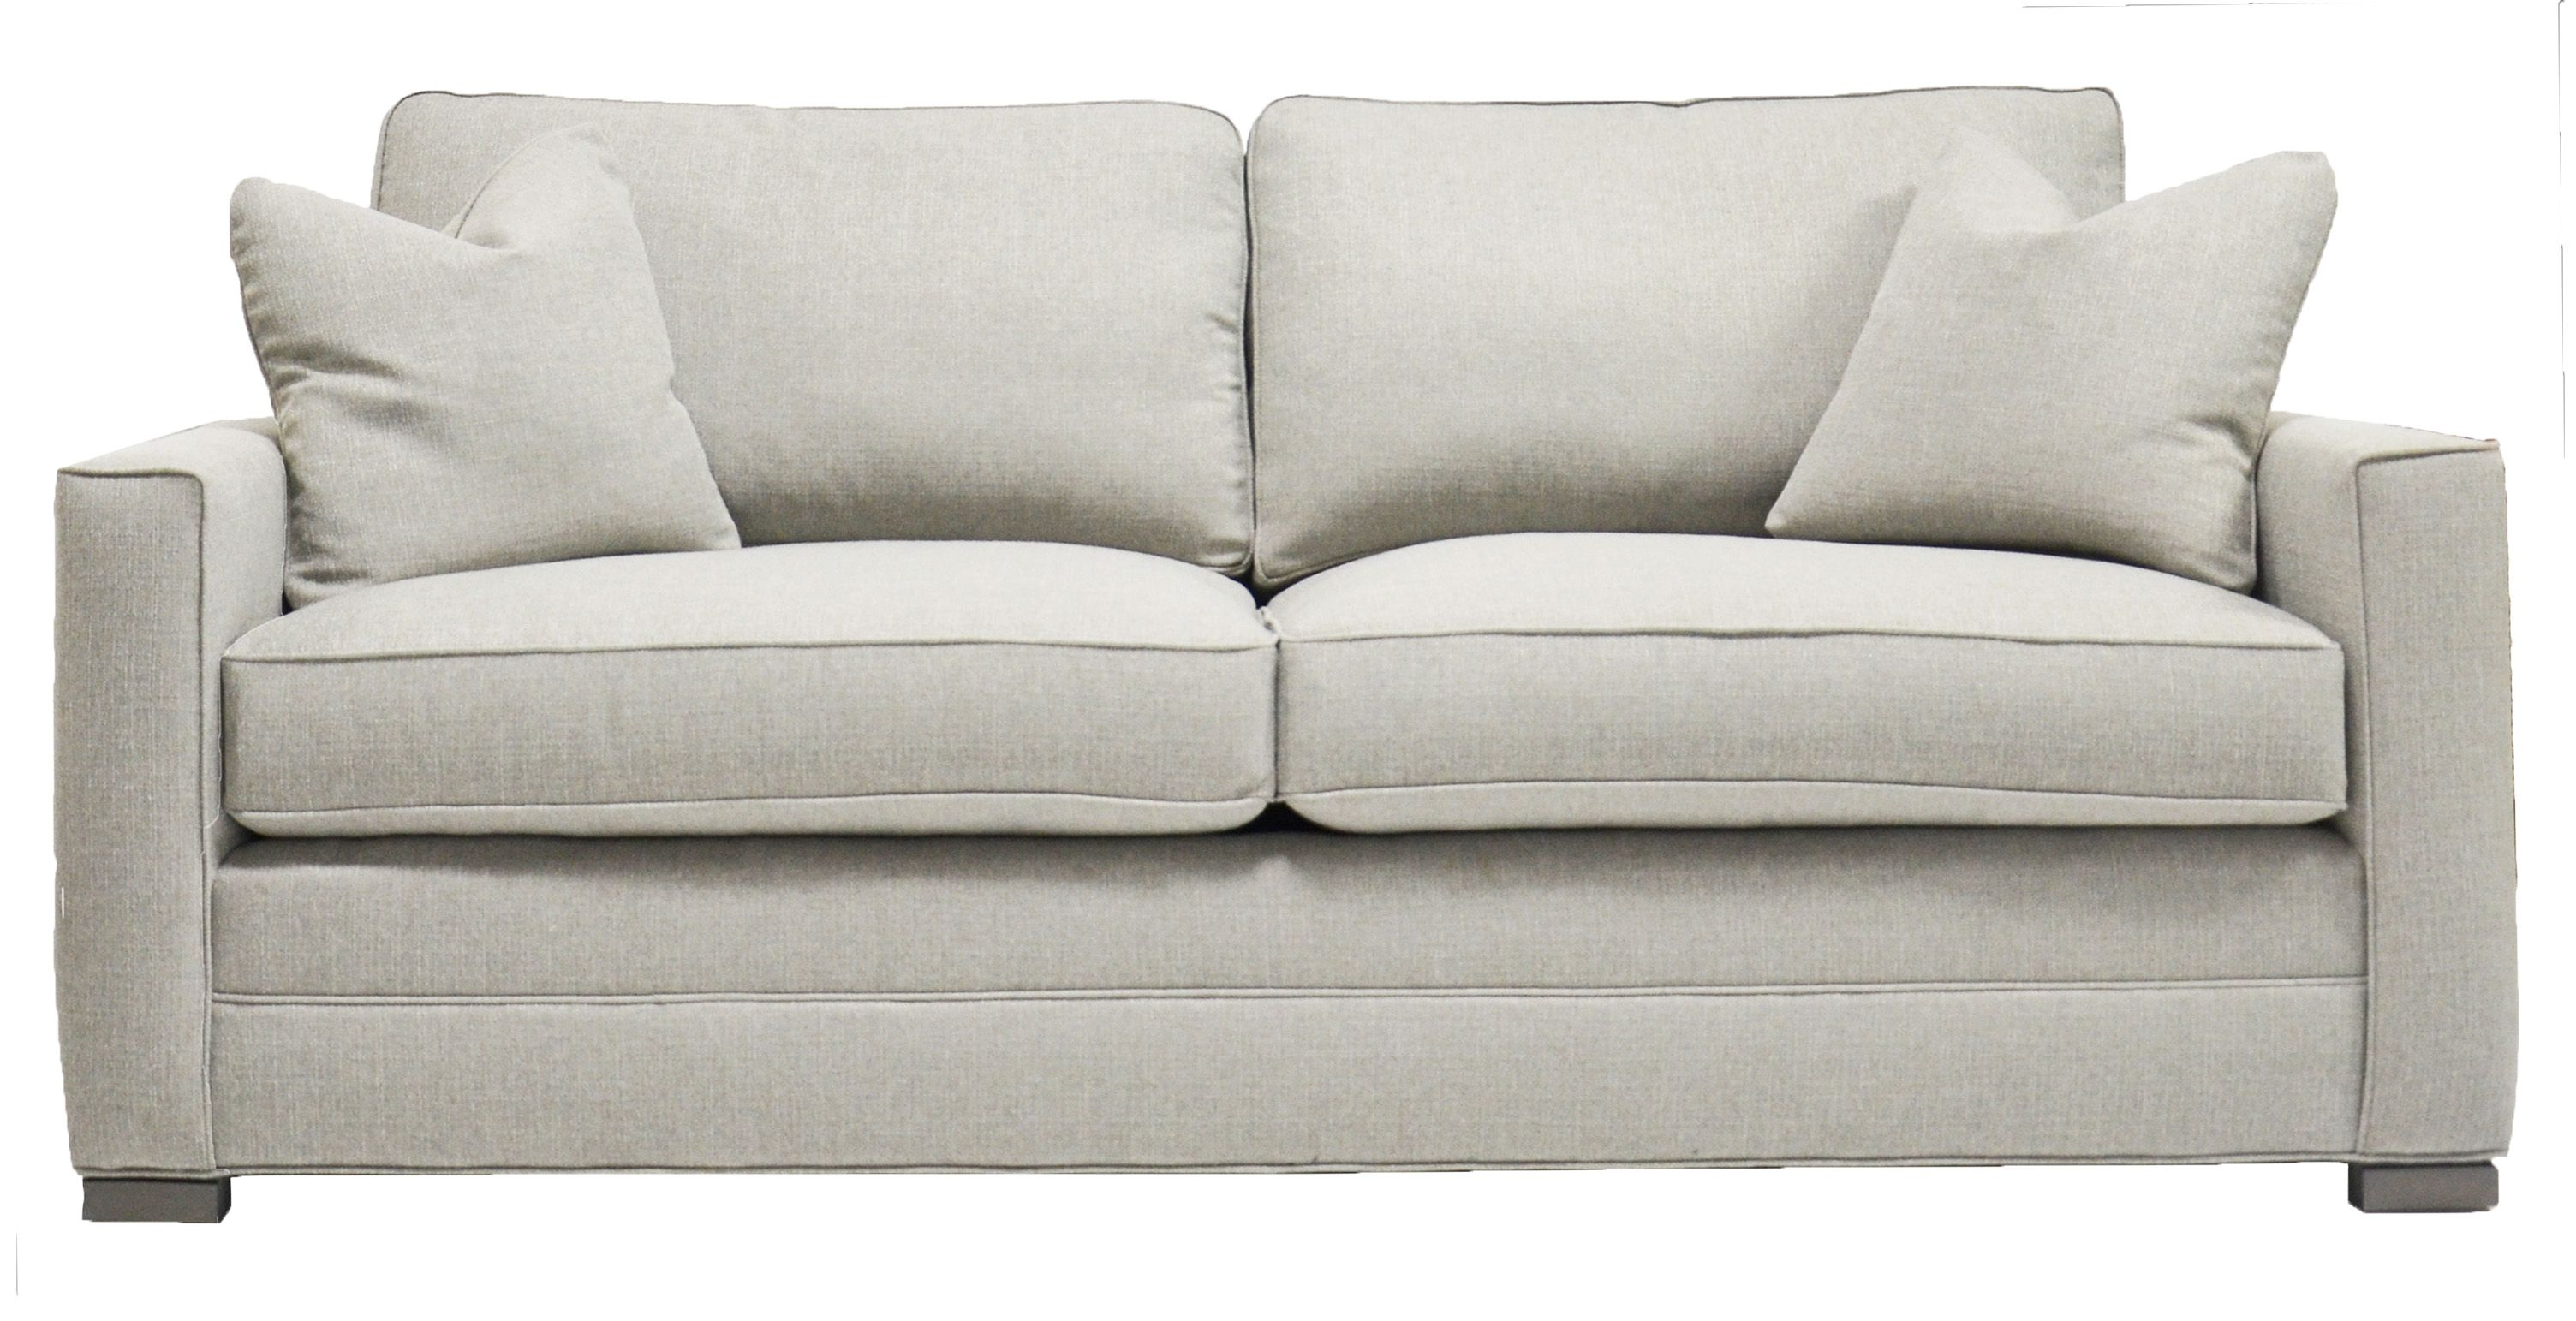 Comina Summerton Sleep Sofa From Vanguard Furniture W 80 D 38 H